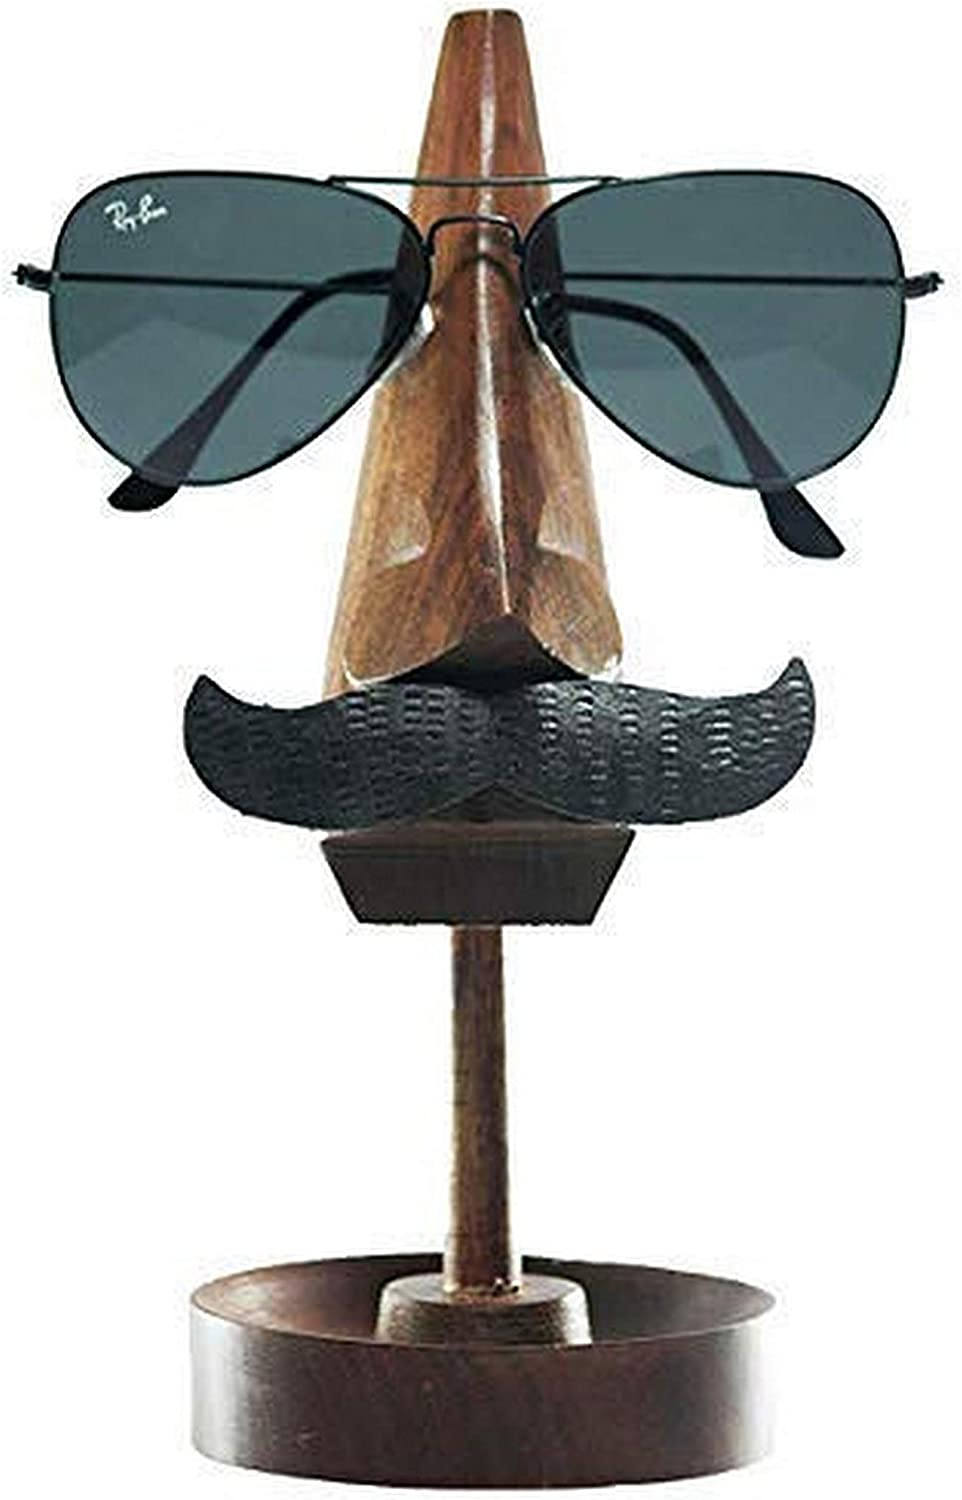 Handicrafzon Eyeglass Holder Home Decor Stand with Nose and Mustache Spectacle Holder Plus Multi Utility Wooden Trinket Holder Display Stand (Coffee Brown)